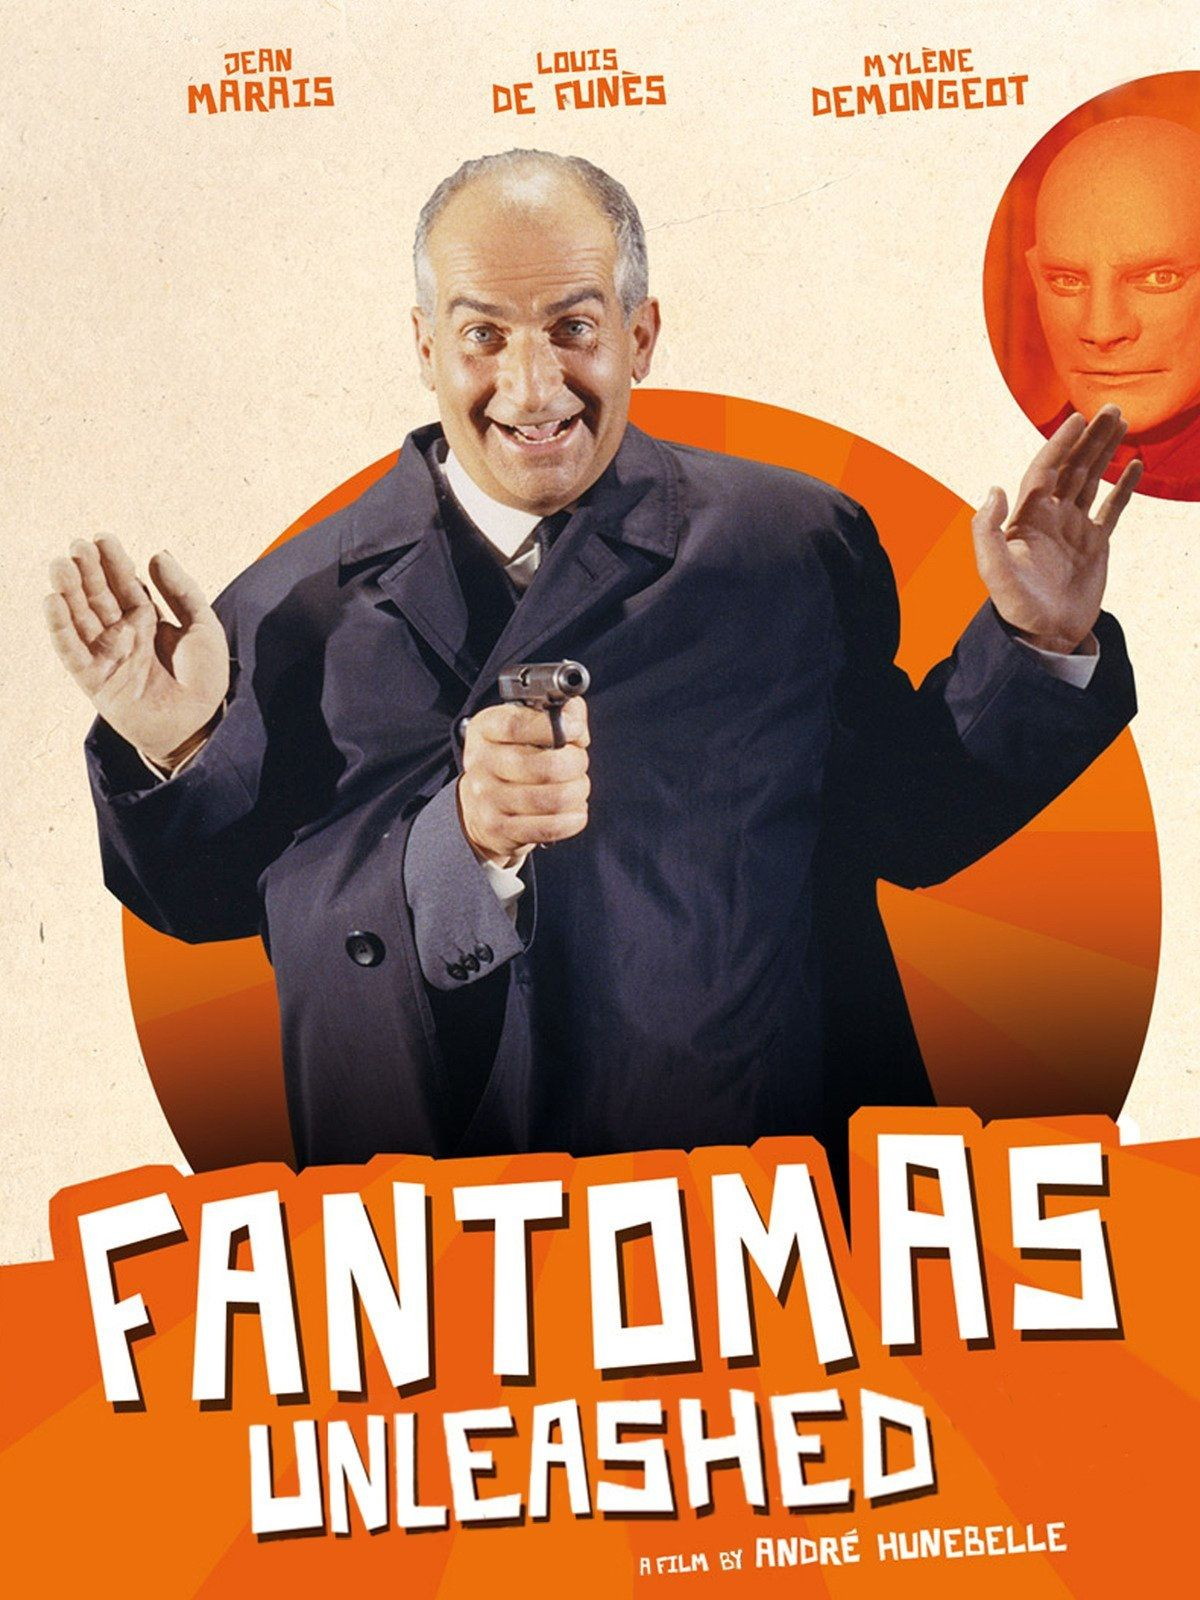 Louis De Funes Film Complet En Francais Check More At Https Www Nicolasbravo Info Louis De Funes Fi Films Complets Louis De Funes Film Film Streaming Gratuit